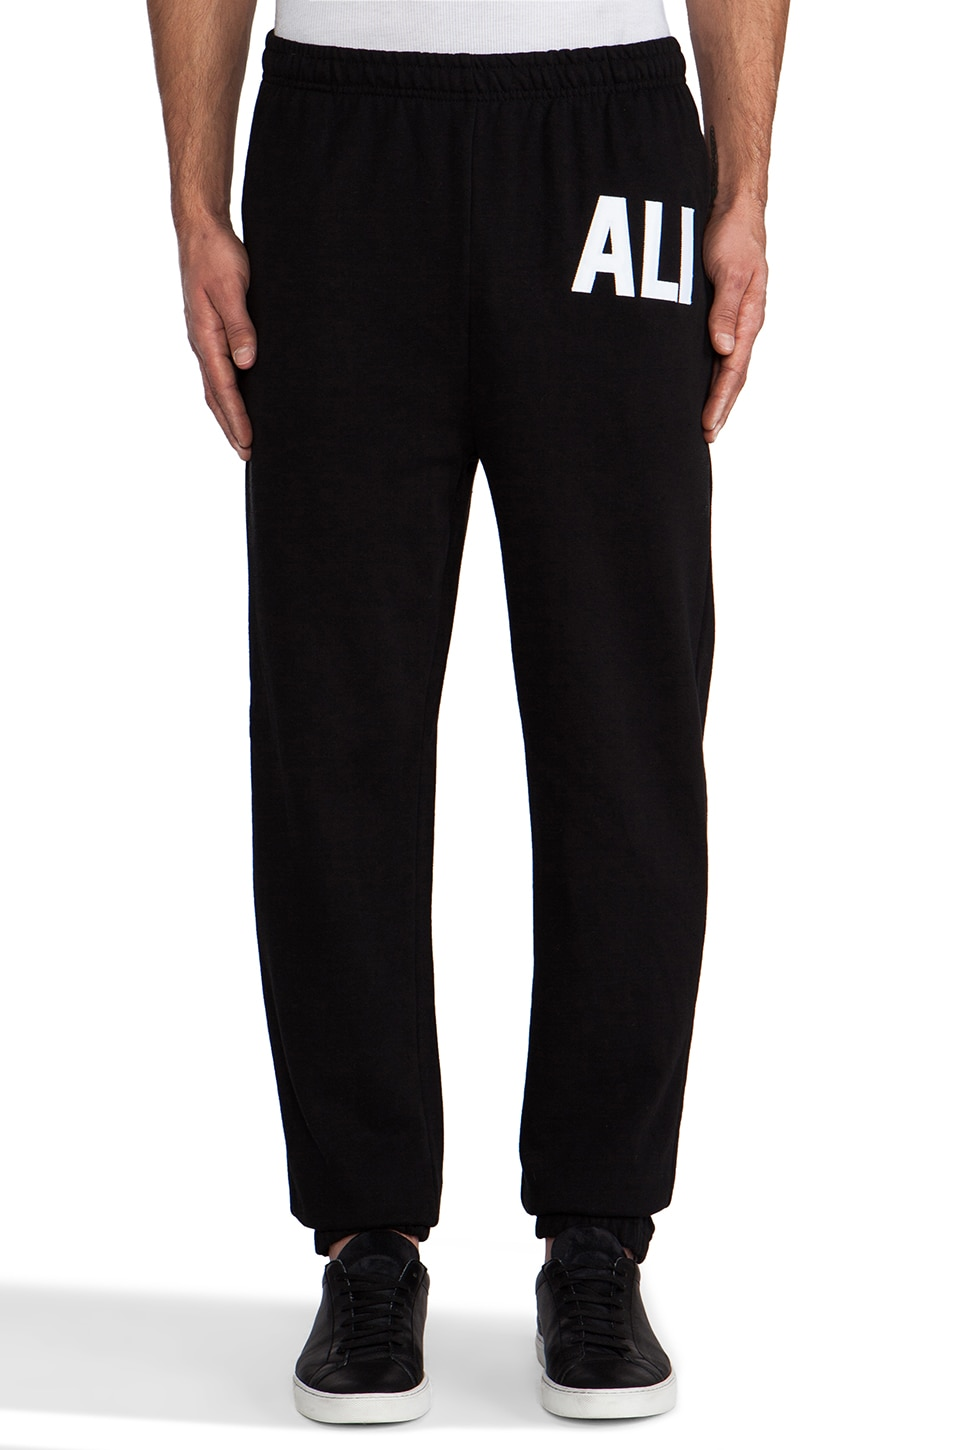 SSUR Ali Sweatpant in Black